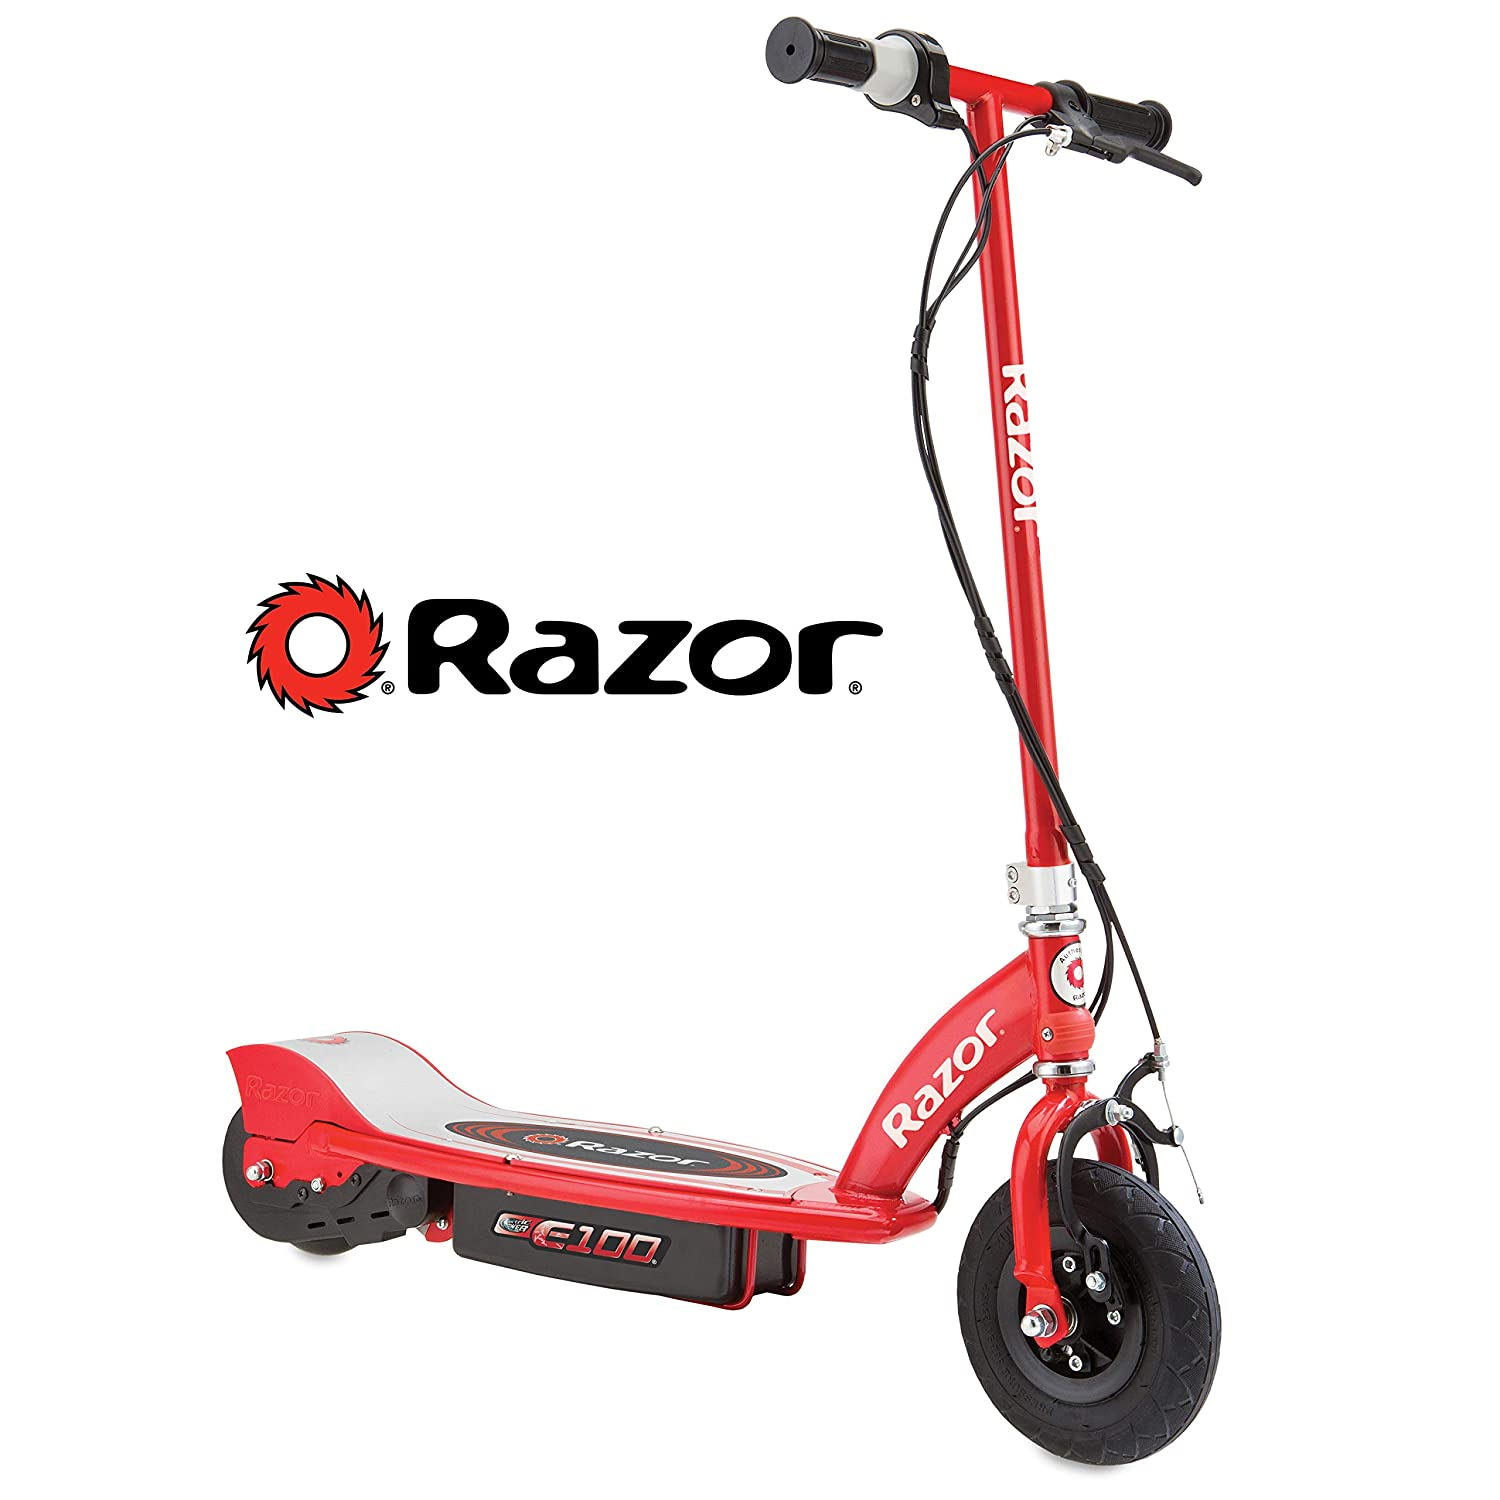 Top 10 Best Razor Scooter (2020 Reviews & Buying Guide) 2